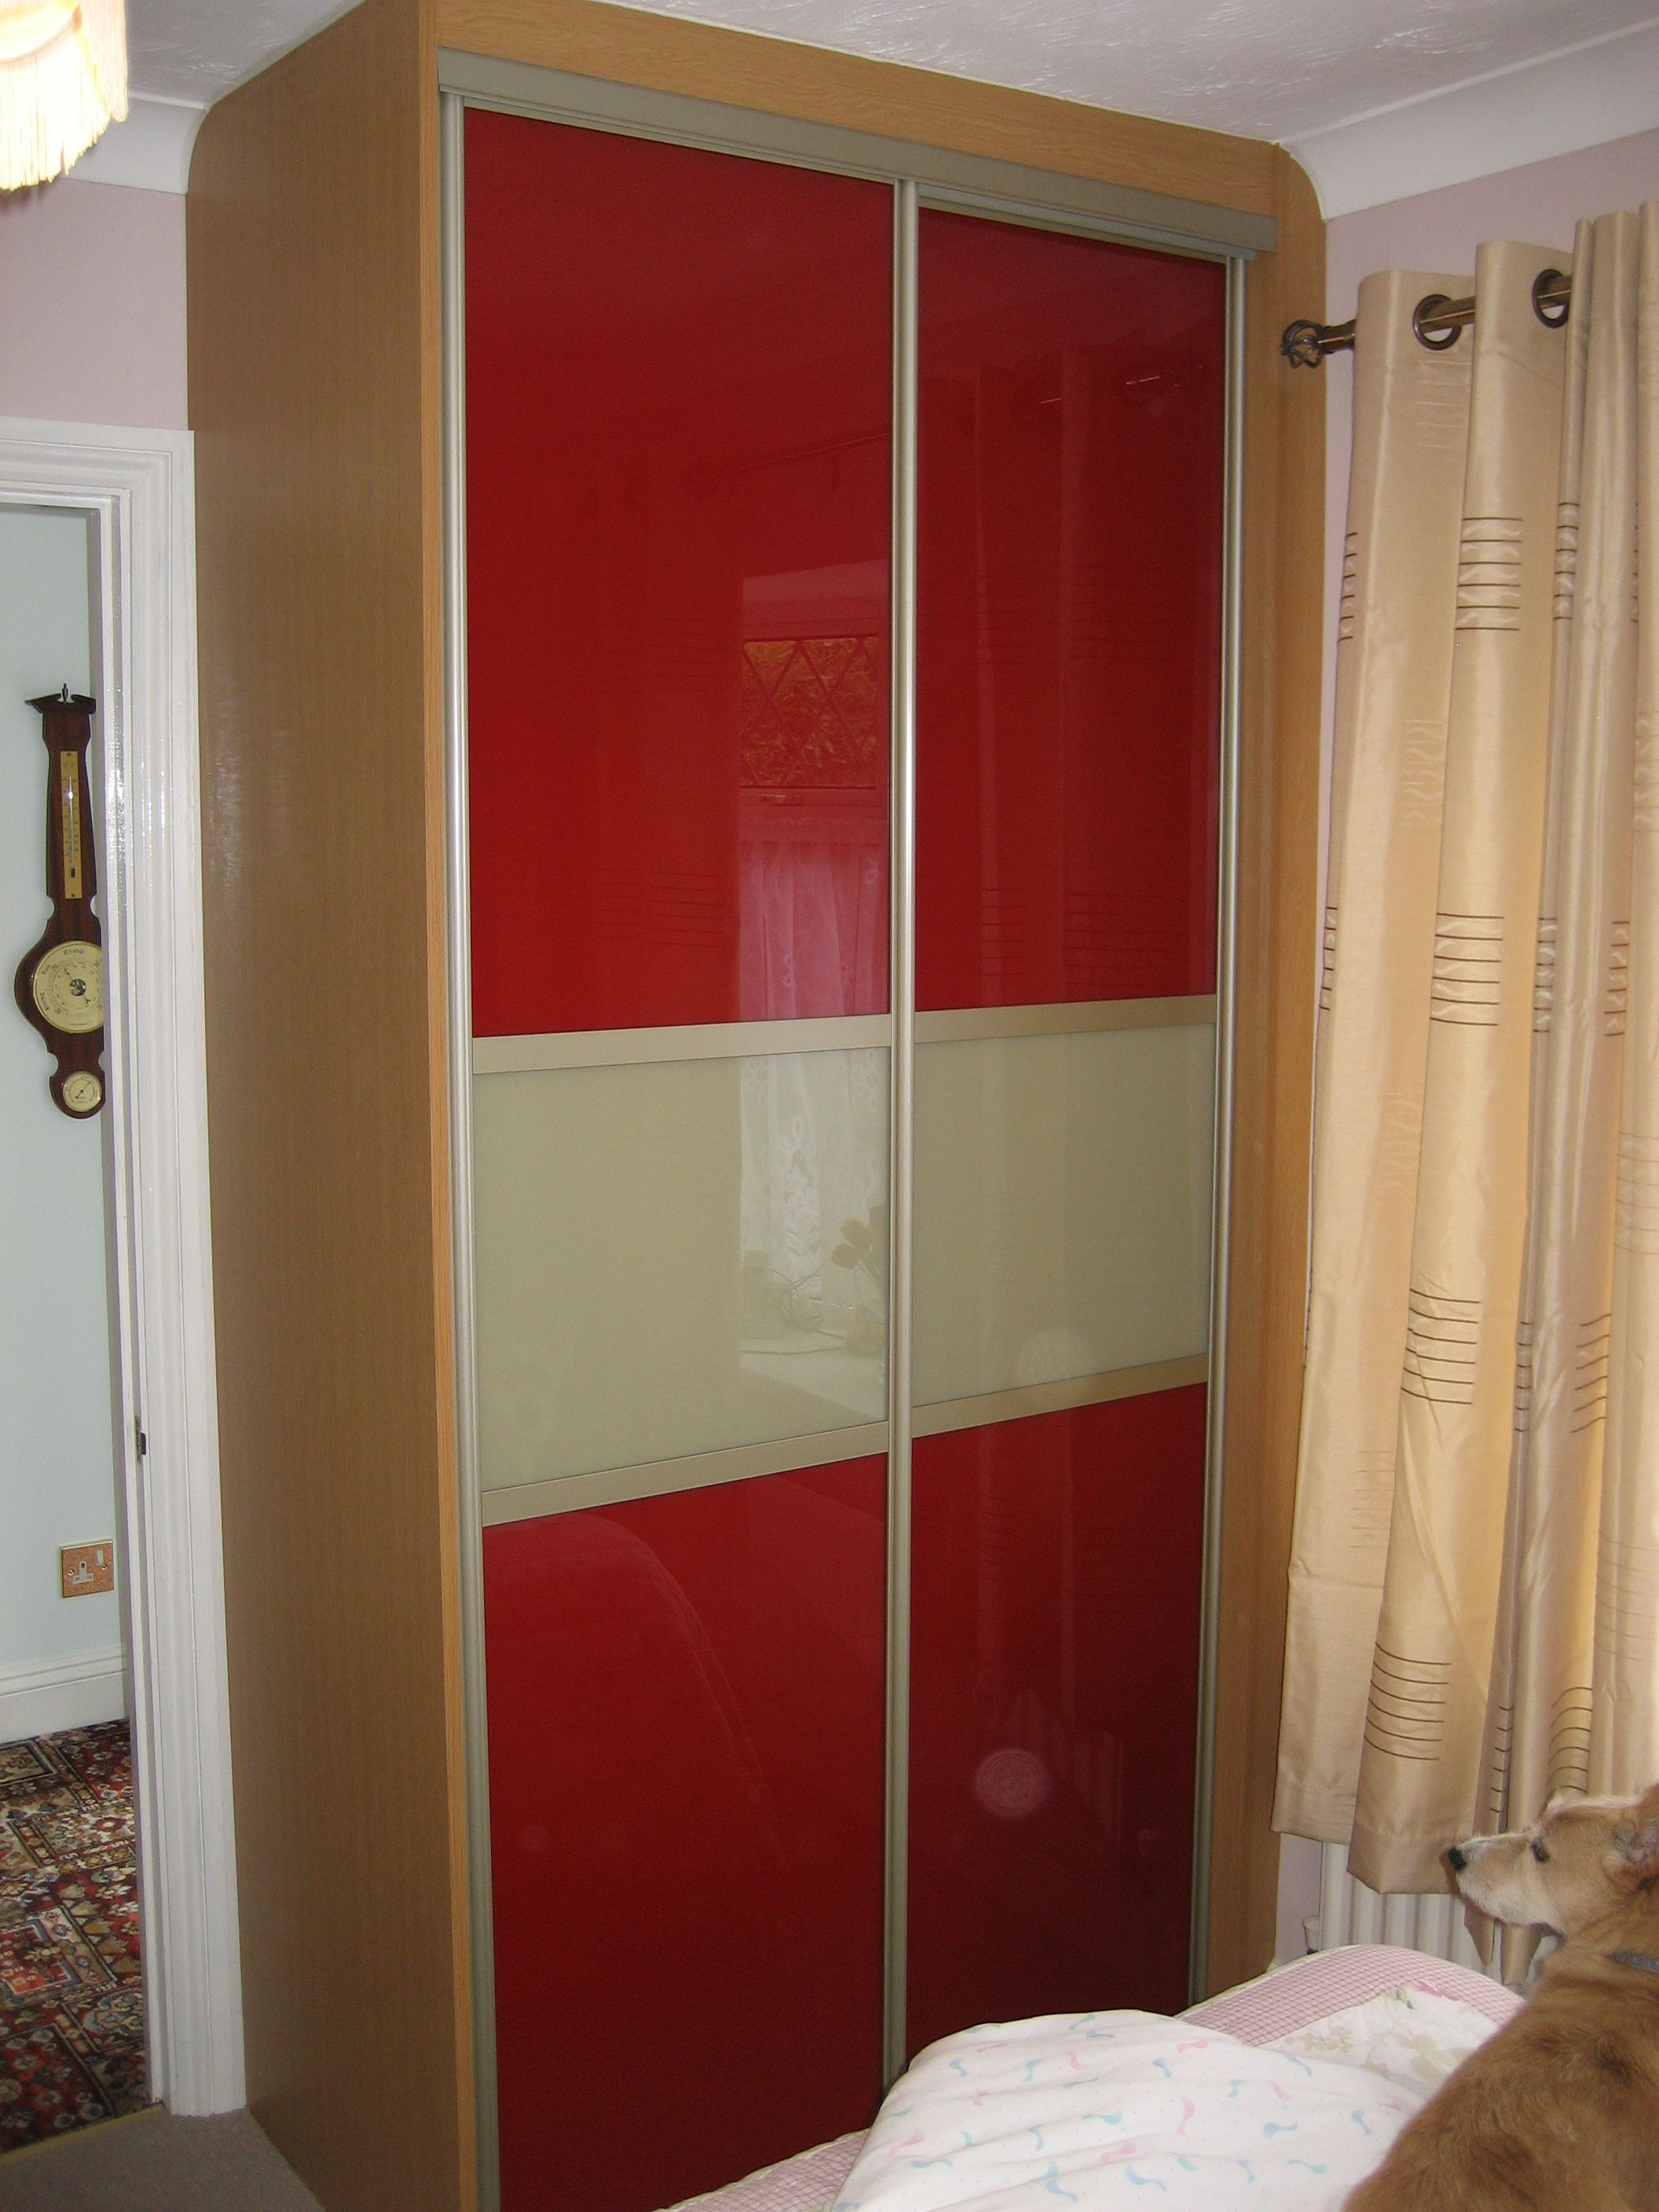 This Bespoke Wardrobe Features Crimson Red Glass Doors With Beige